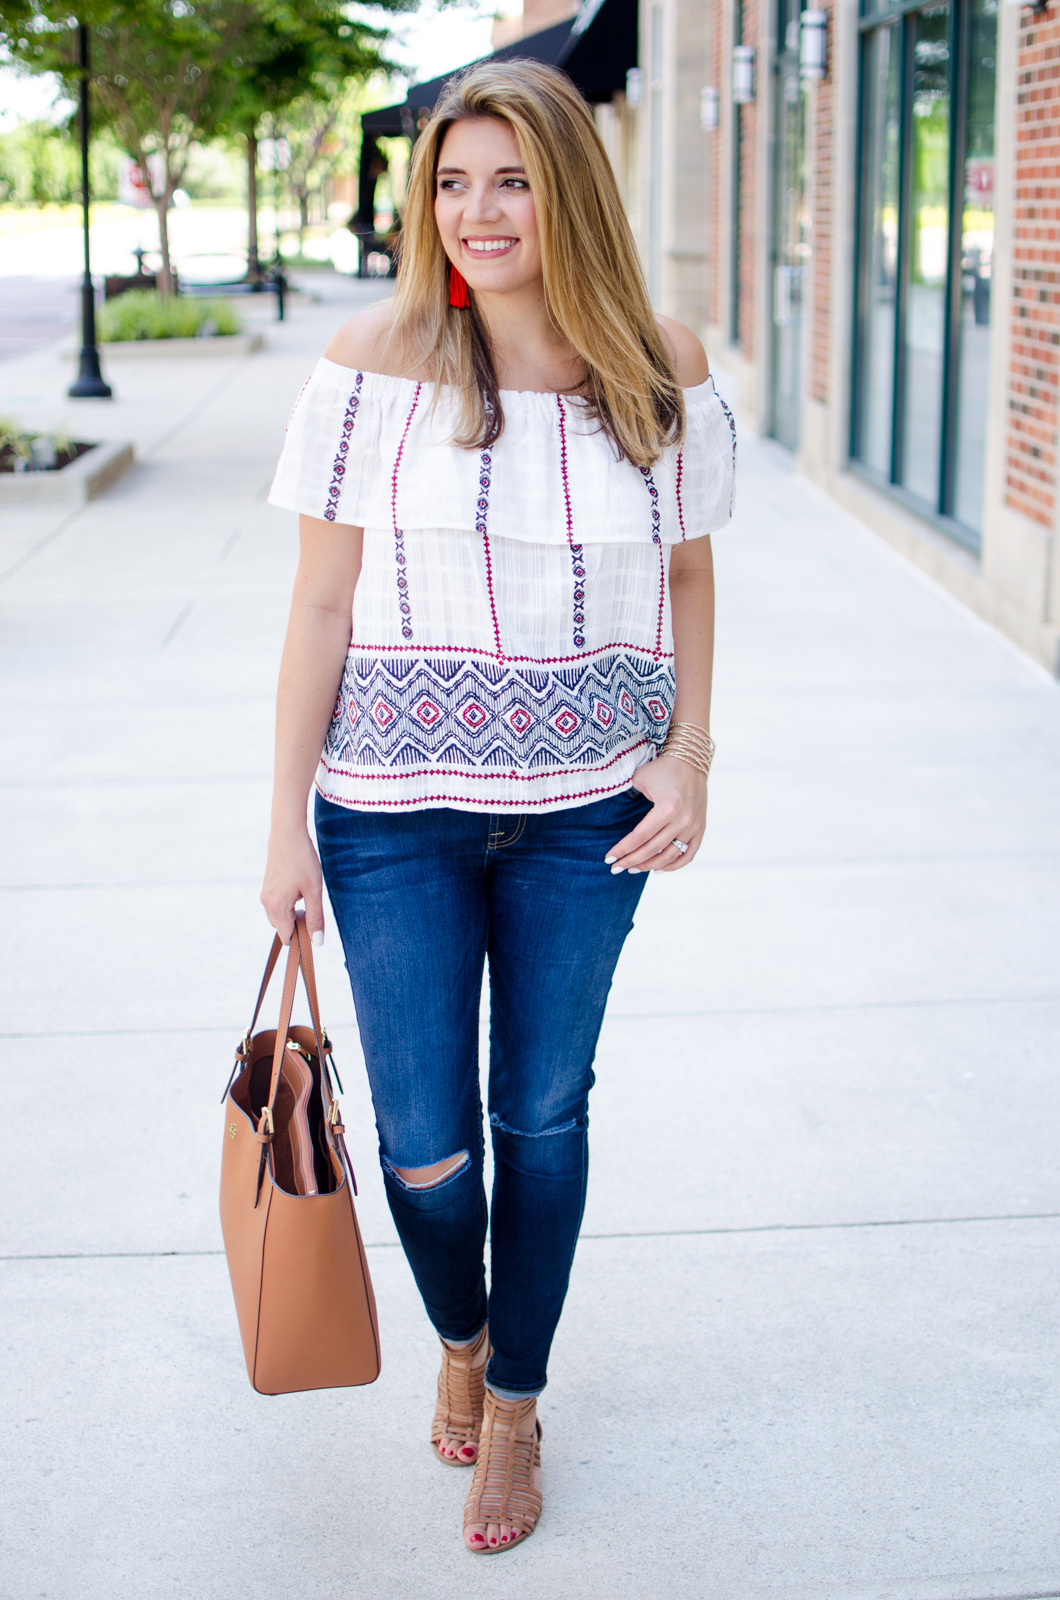 red, white, and blue summer outfit idea | For more Summer outfit ideas, head to bylaurenm.com!